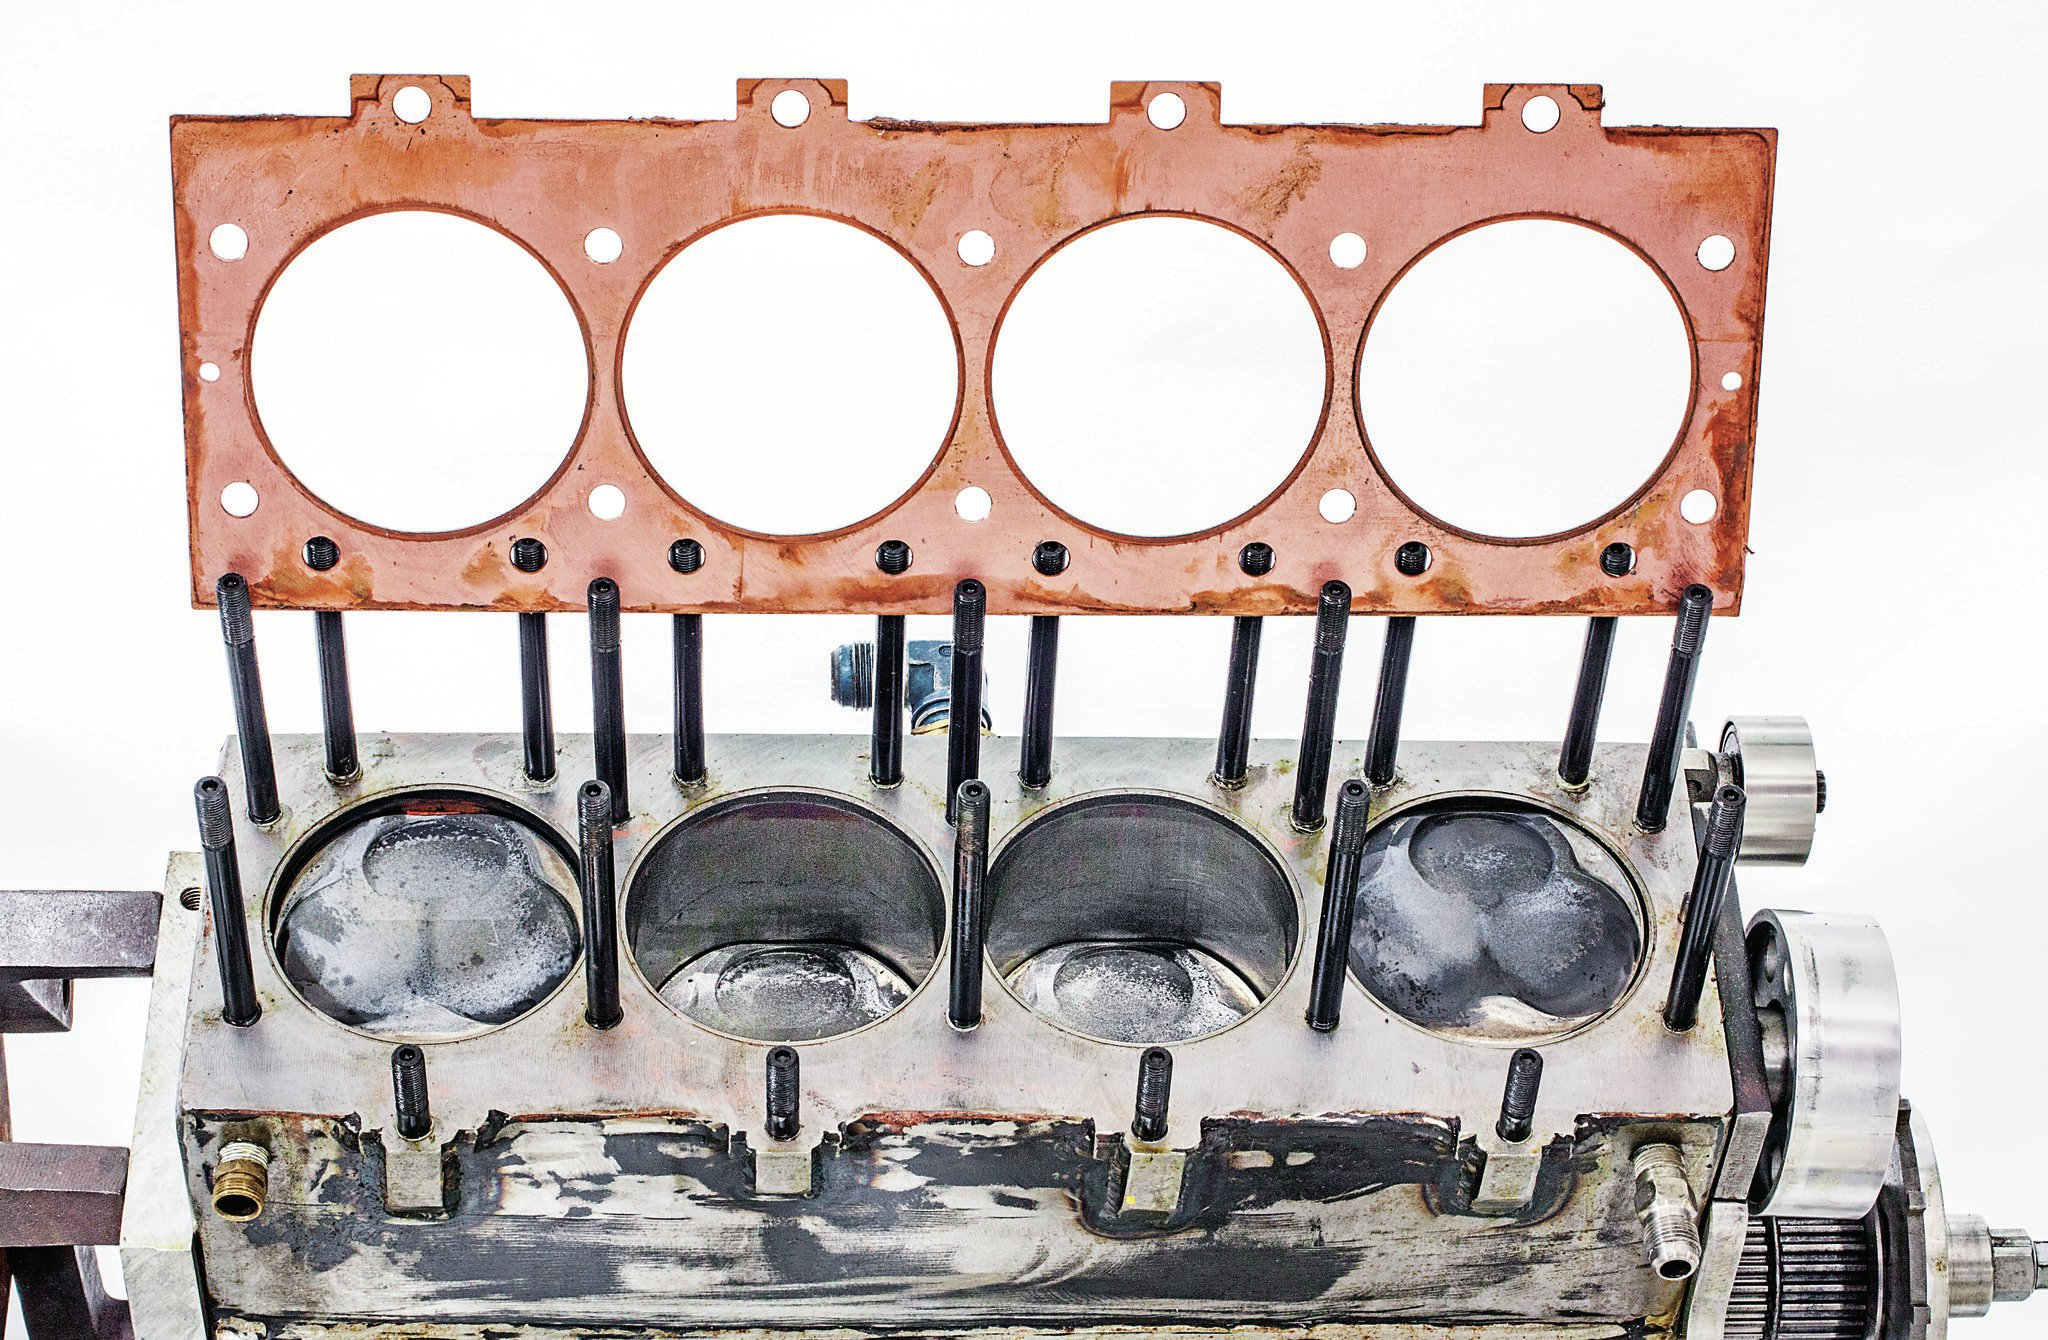 A one-off, made-to-order, Cometic solid-copper head gasket combines with stainless steel O-rings and receiver grooves cut into the head and deck to seal the head to the block. The gasket was deliberately spec'd thicker than usual—0.090-inch compressed—to get the quench right with the engine's above-the-block piston deck height.